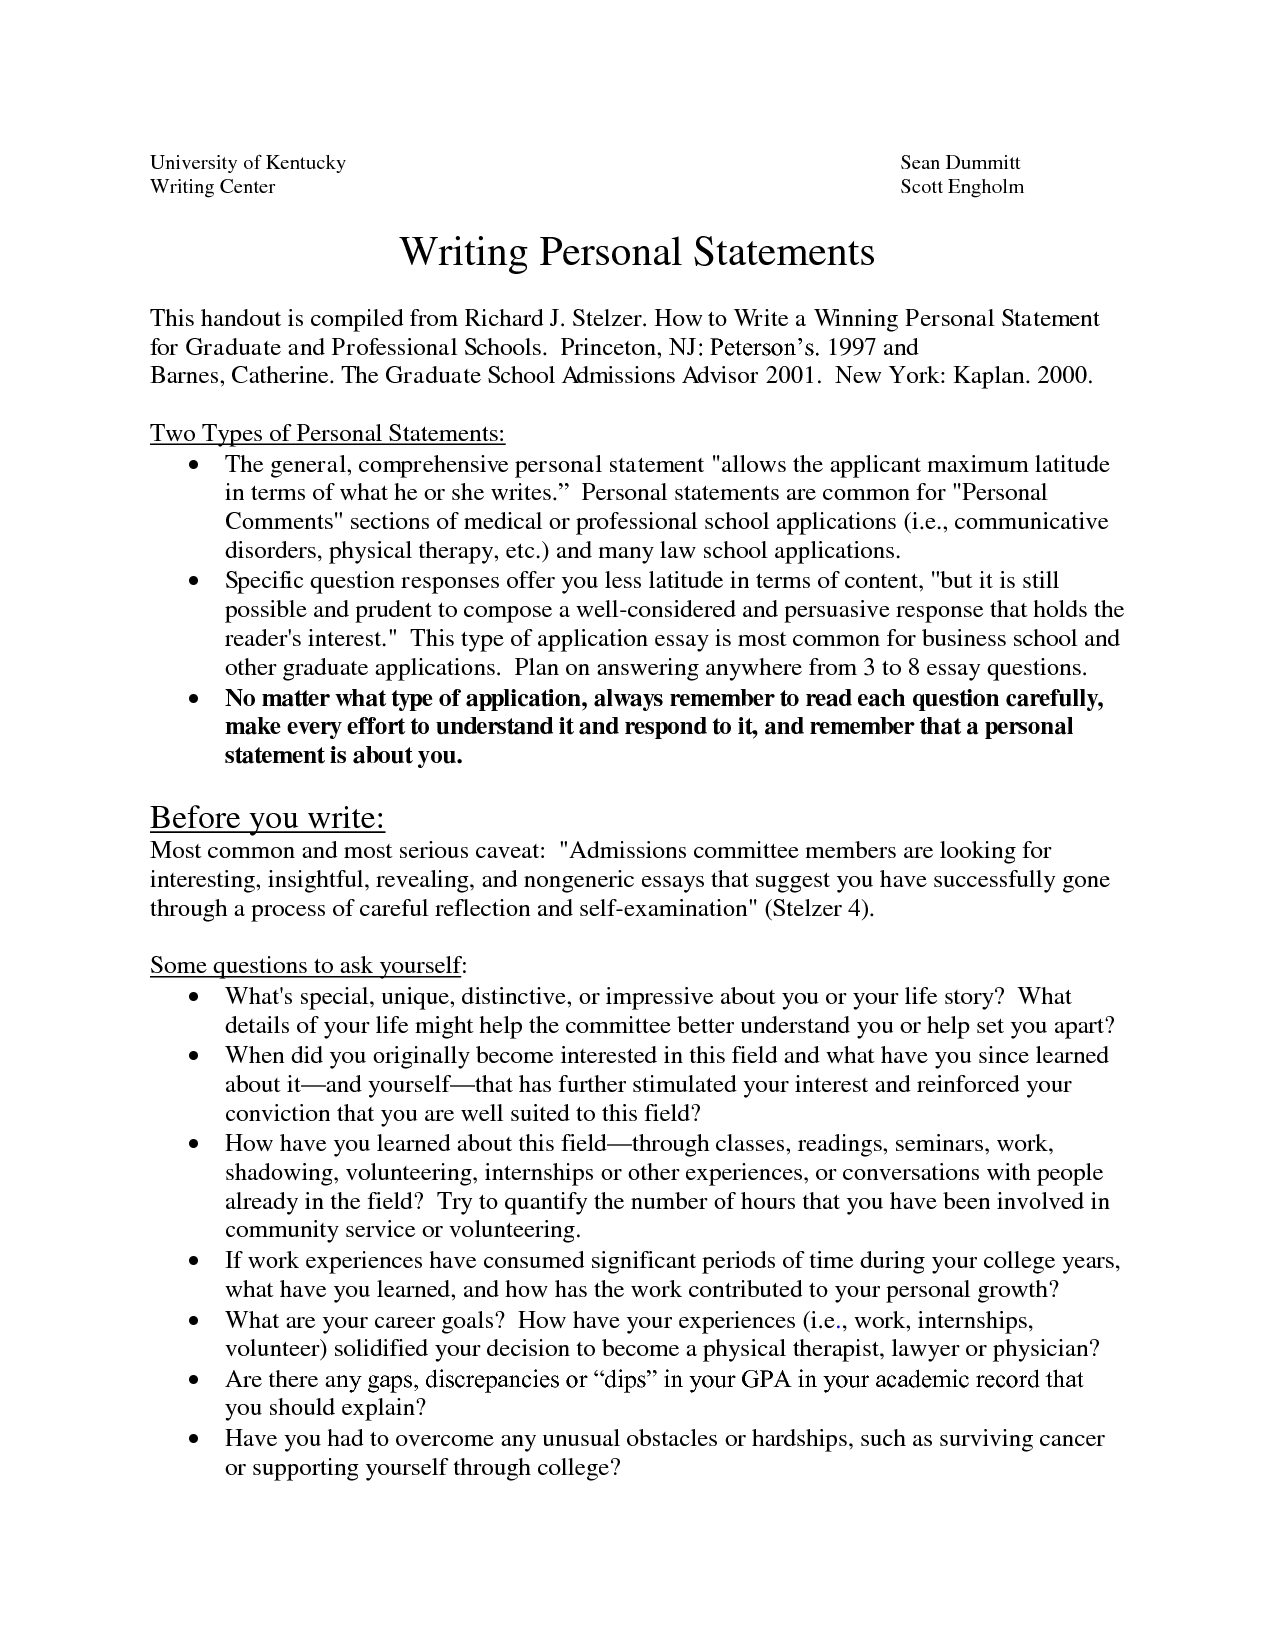 examples of personal statements for graduate school in counseling